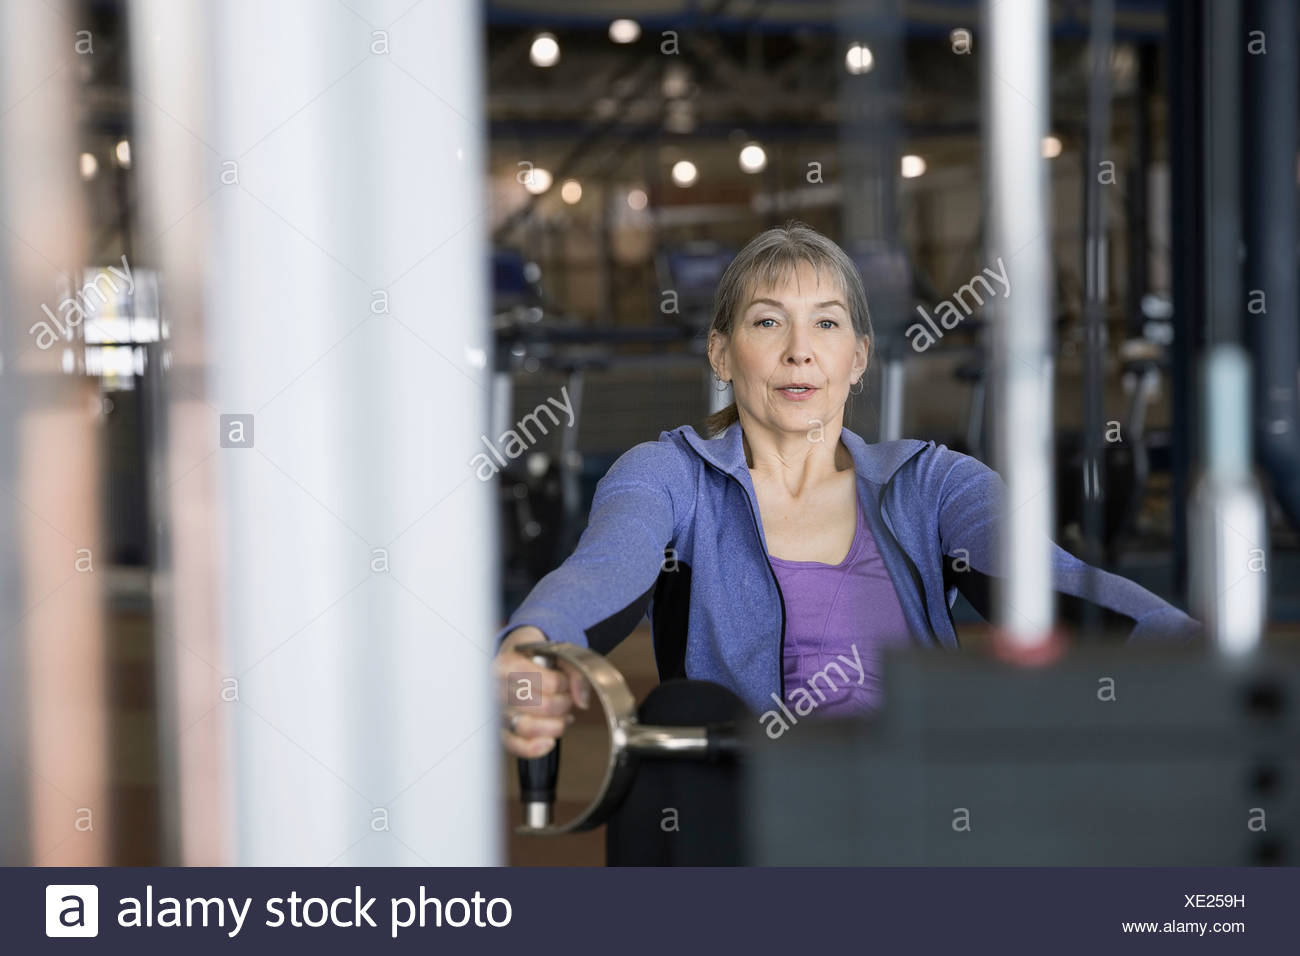 Woman using exercise machine at gym - Stock Image